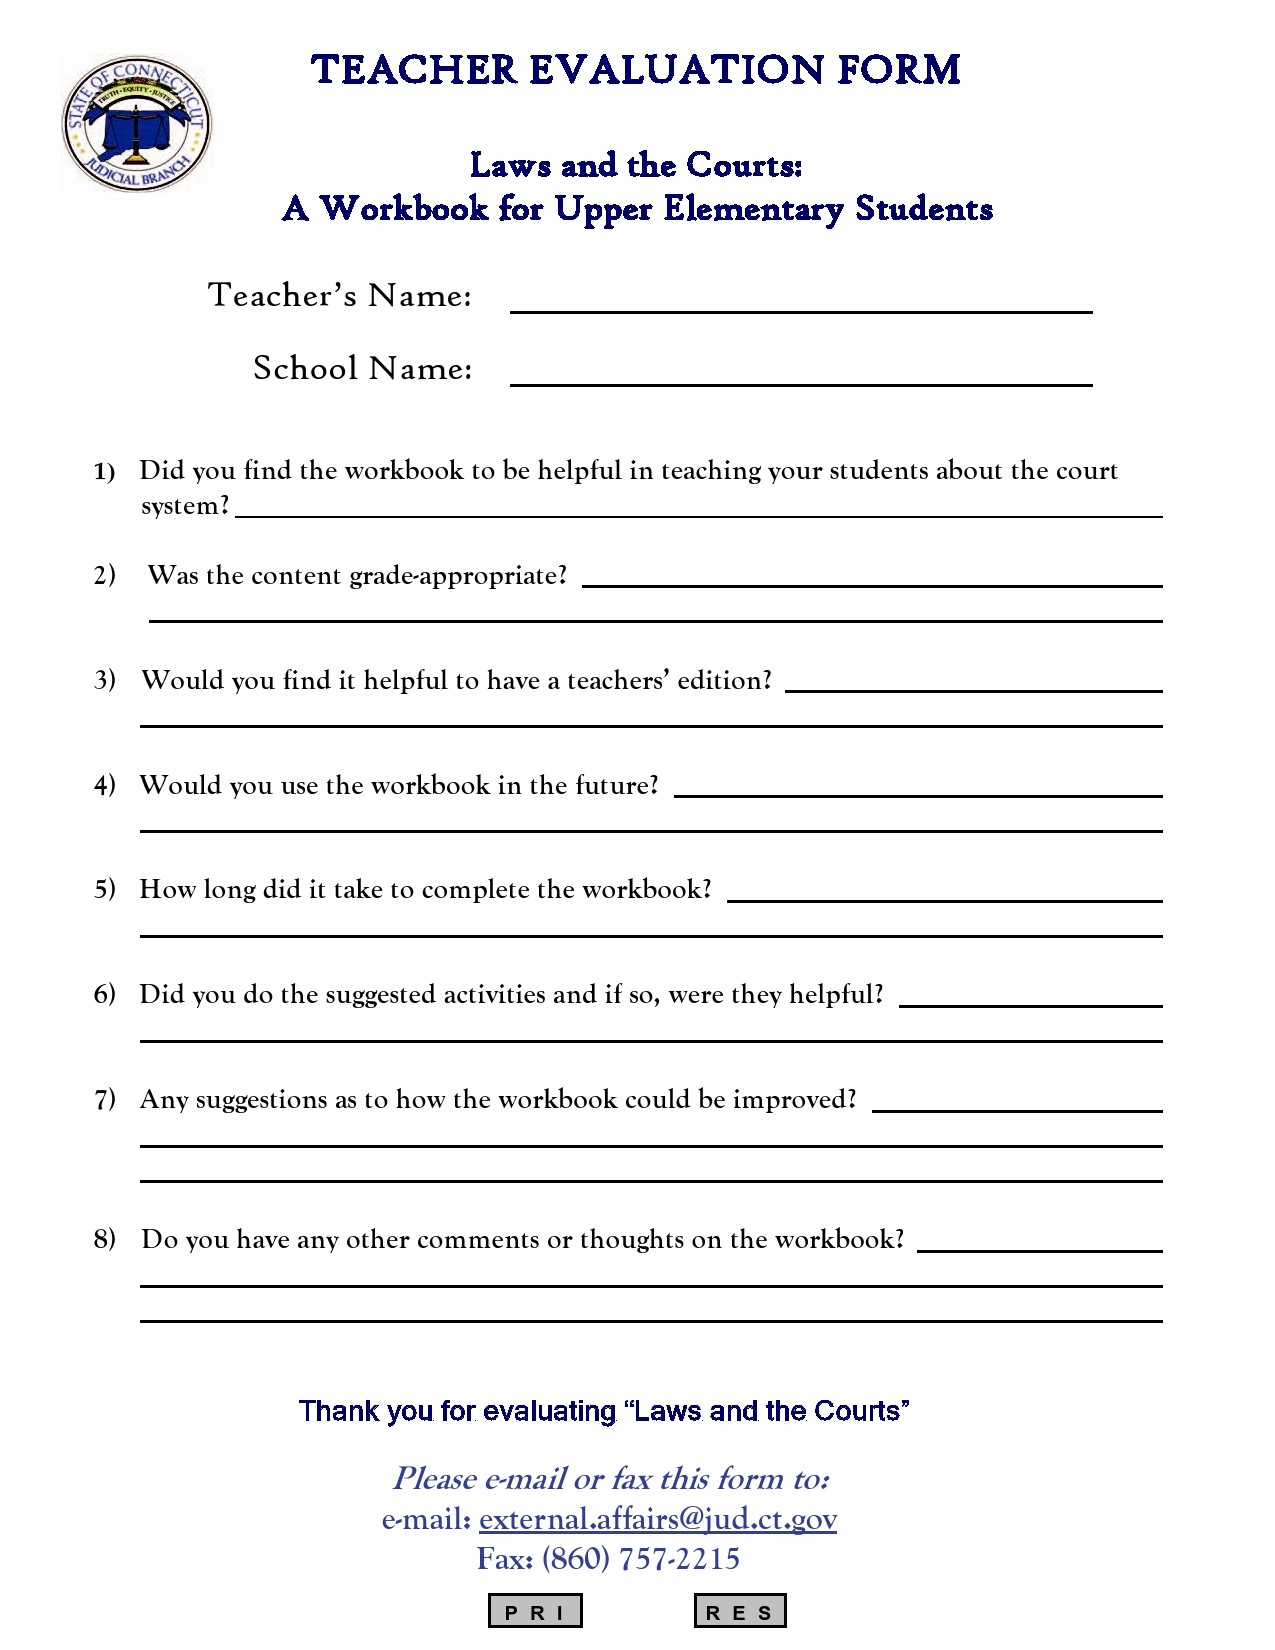 Free teacher evaluation form 13